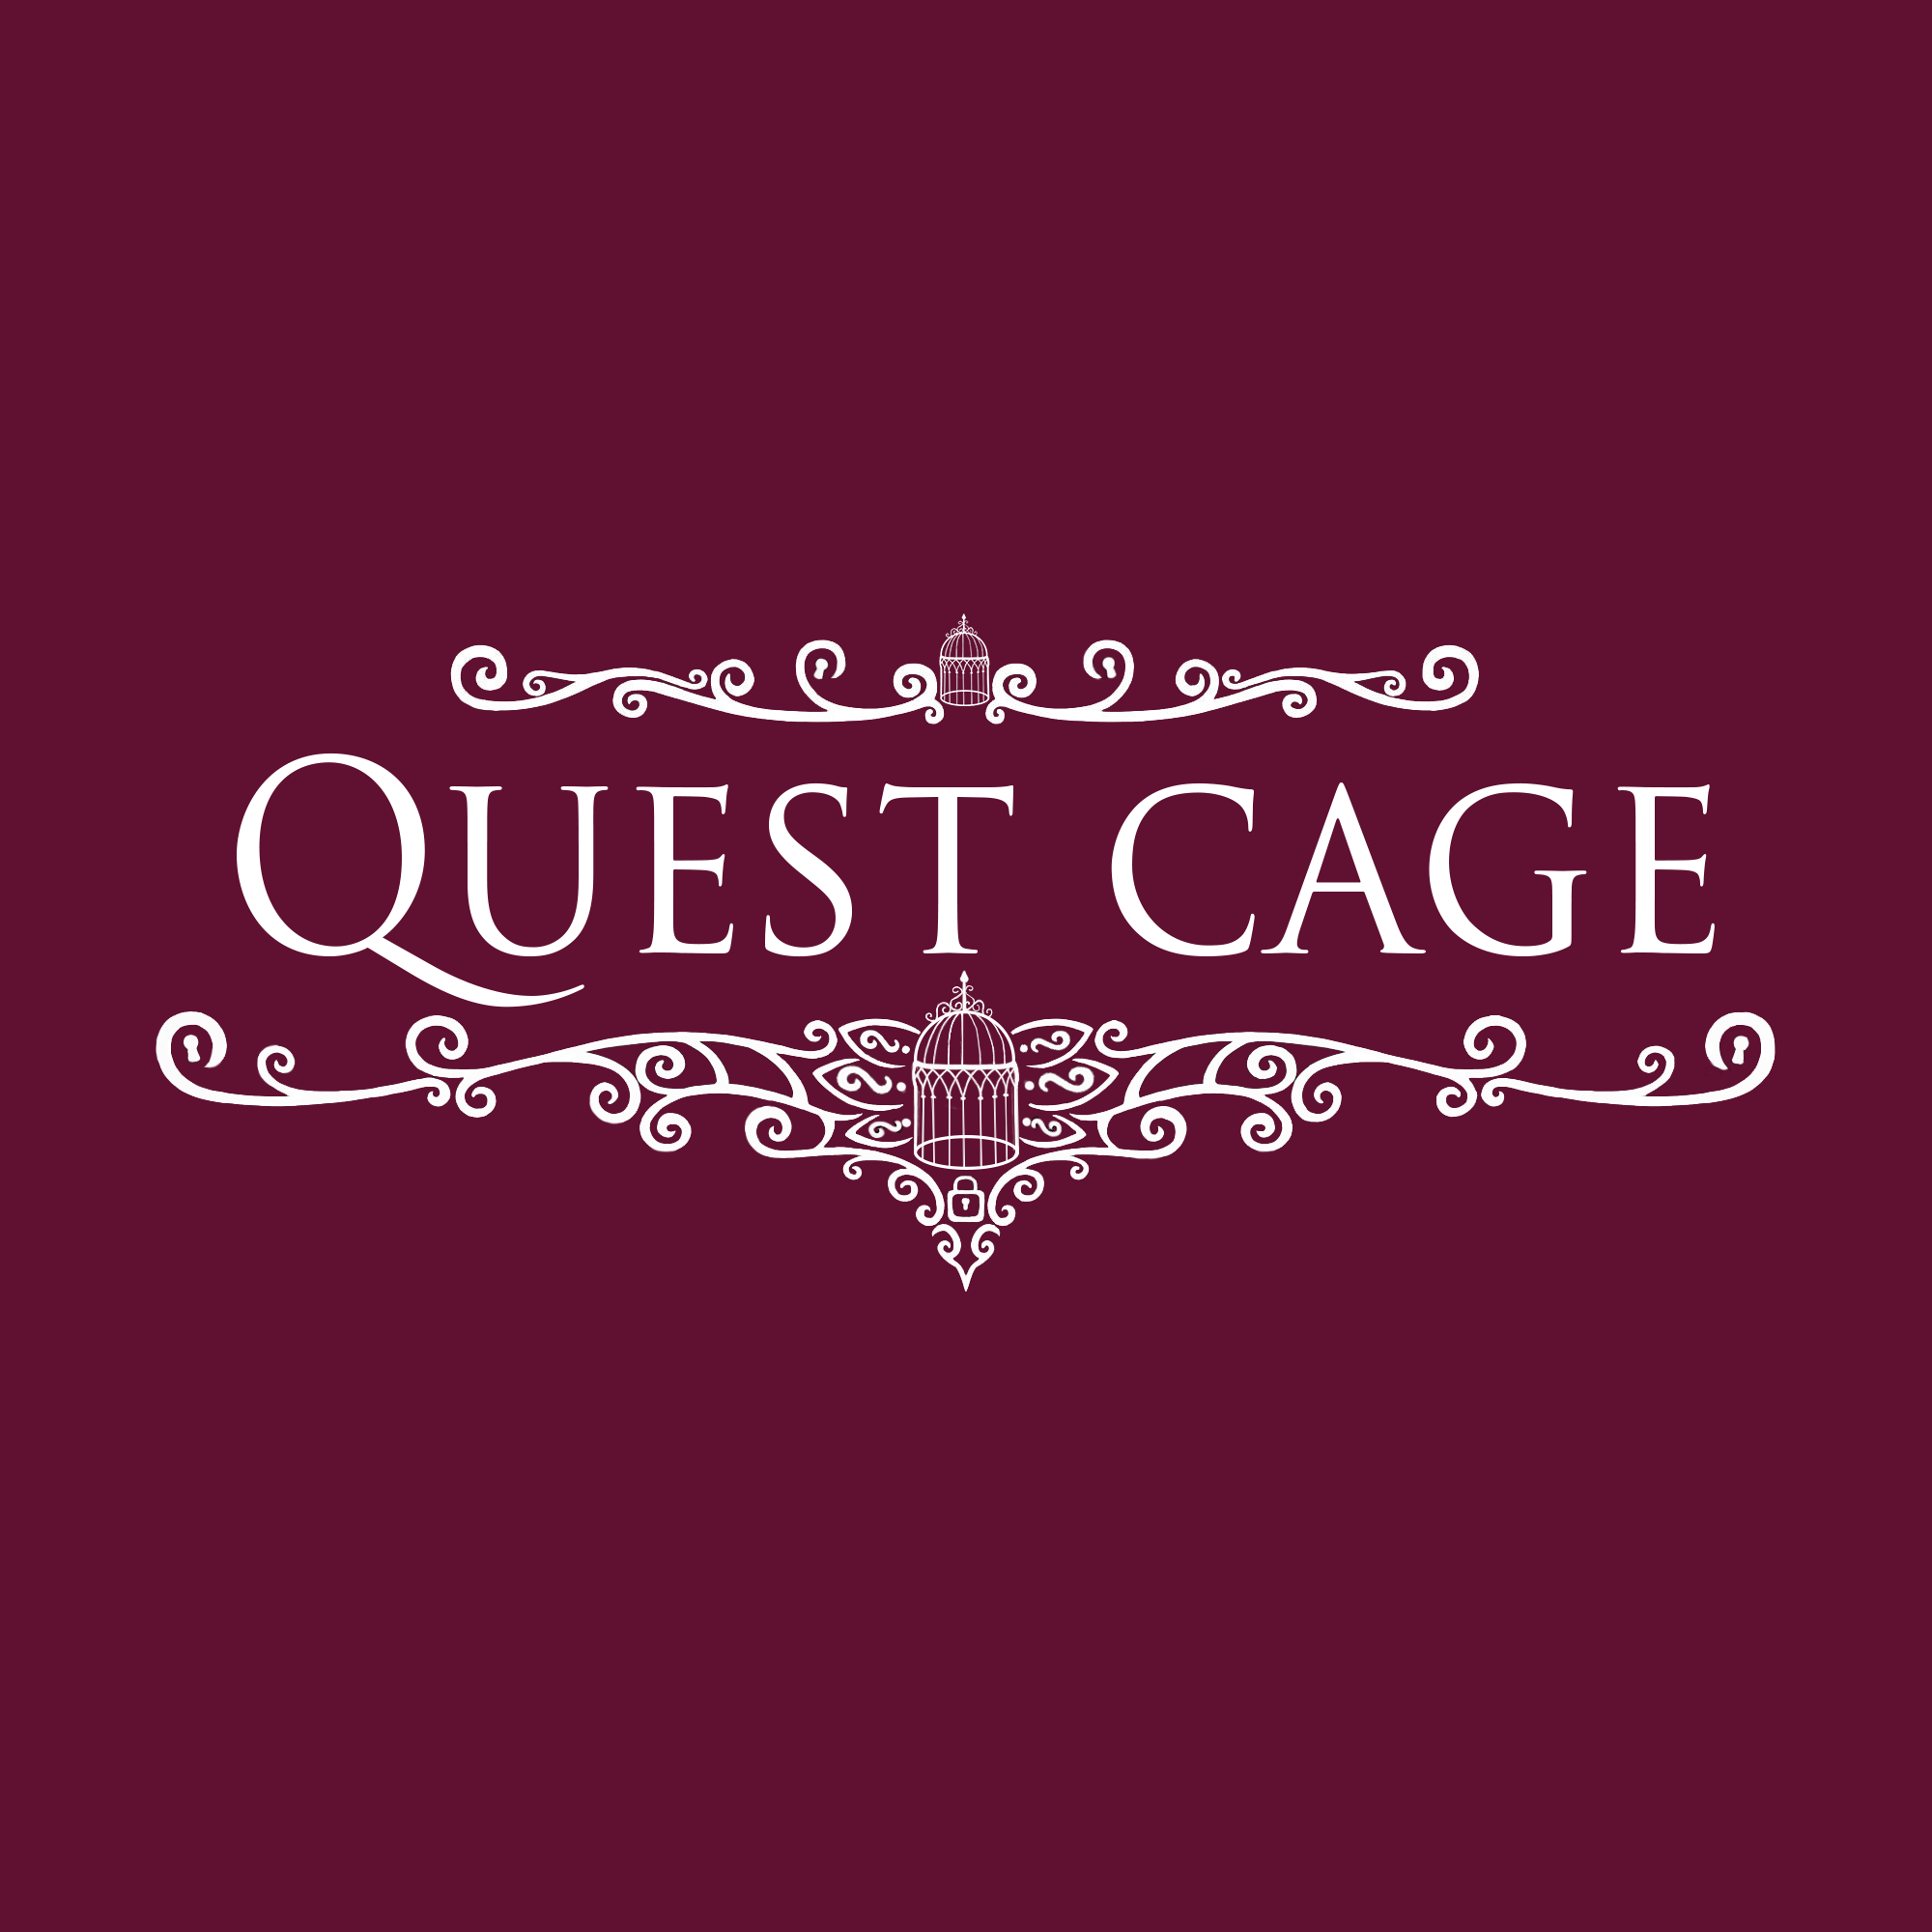 Quest Cage logo hollow